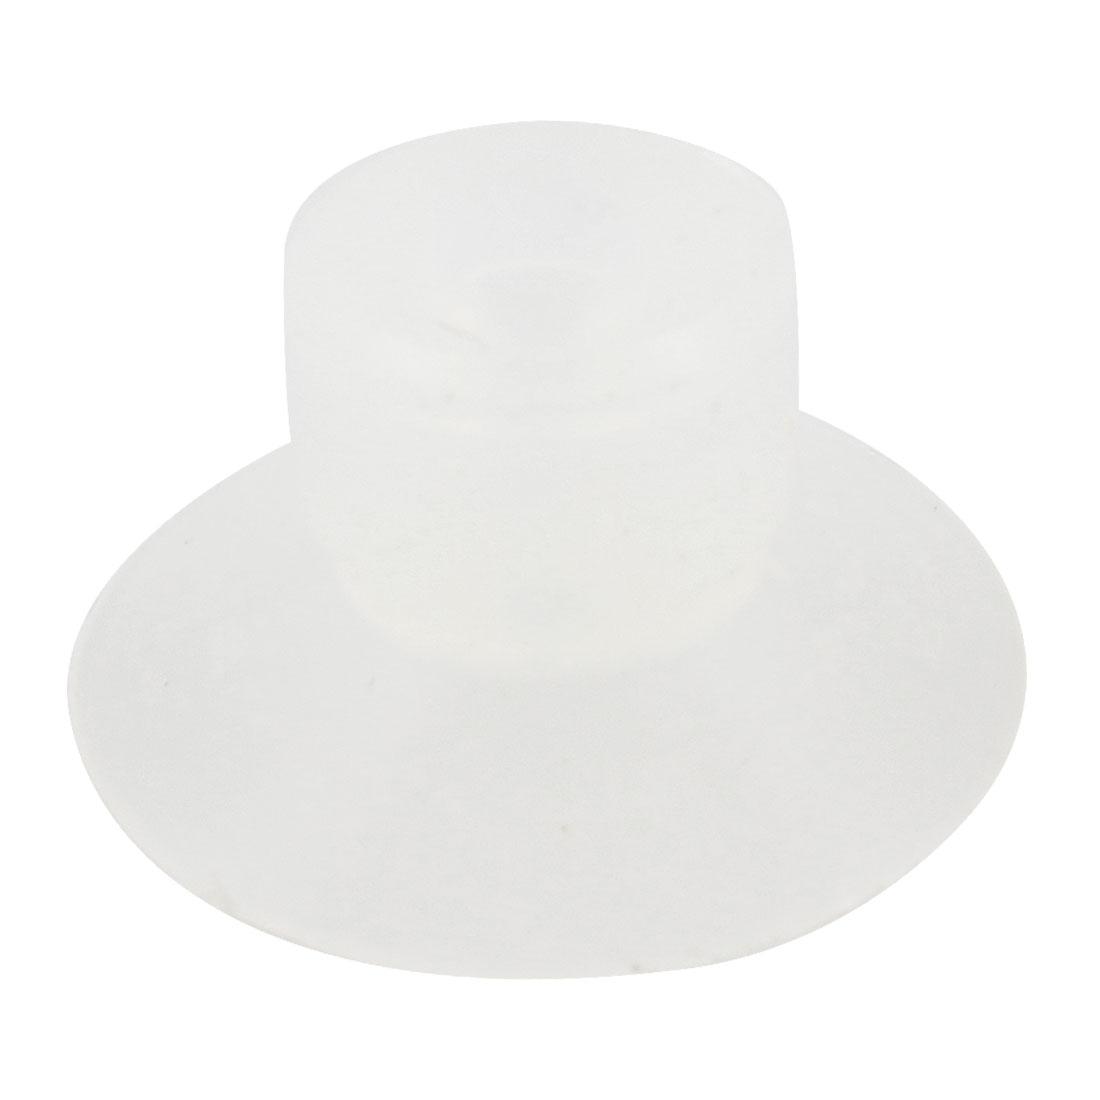 5mm Inner Dia Mini Silicone Vacuum Suction Cup Filter 25mm x 14mm